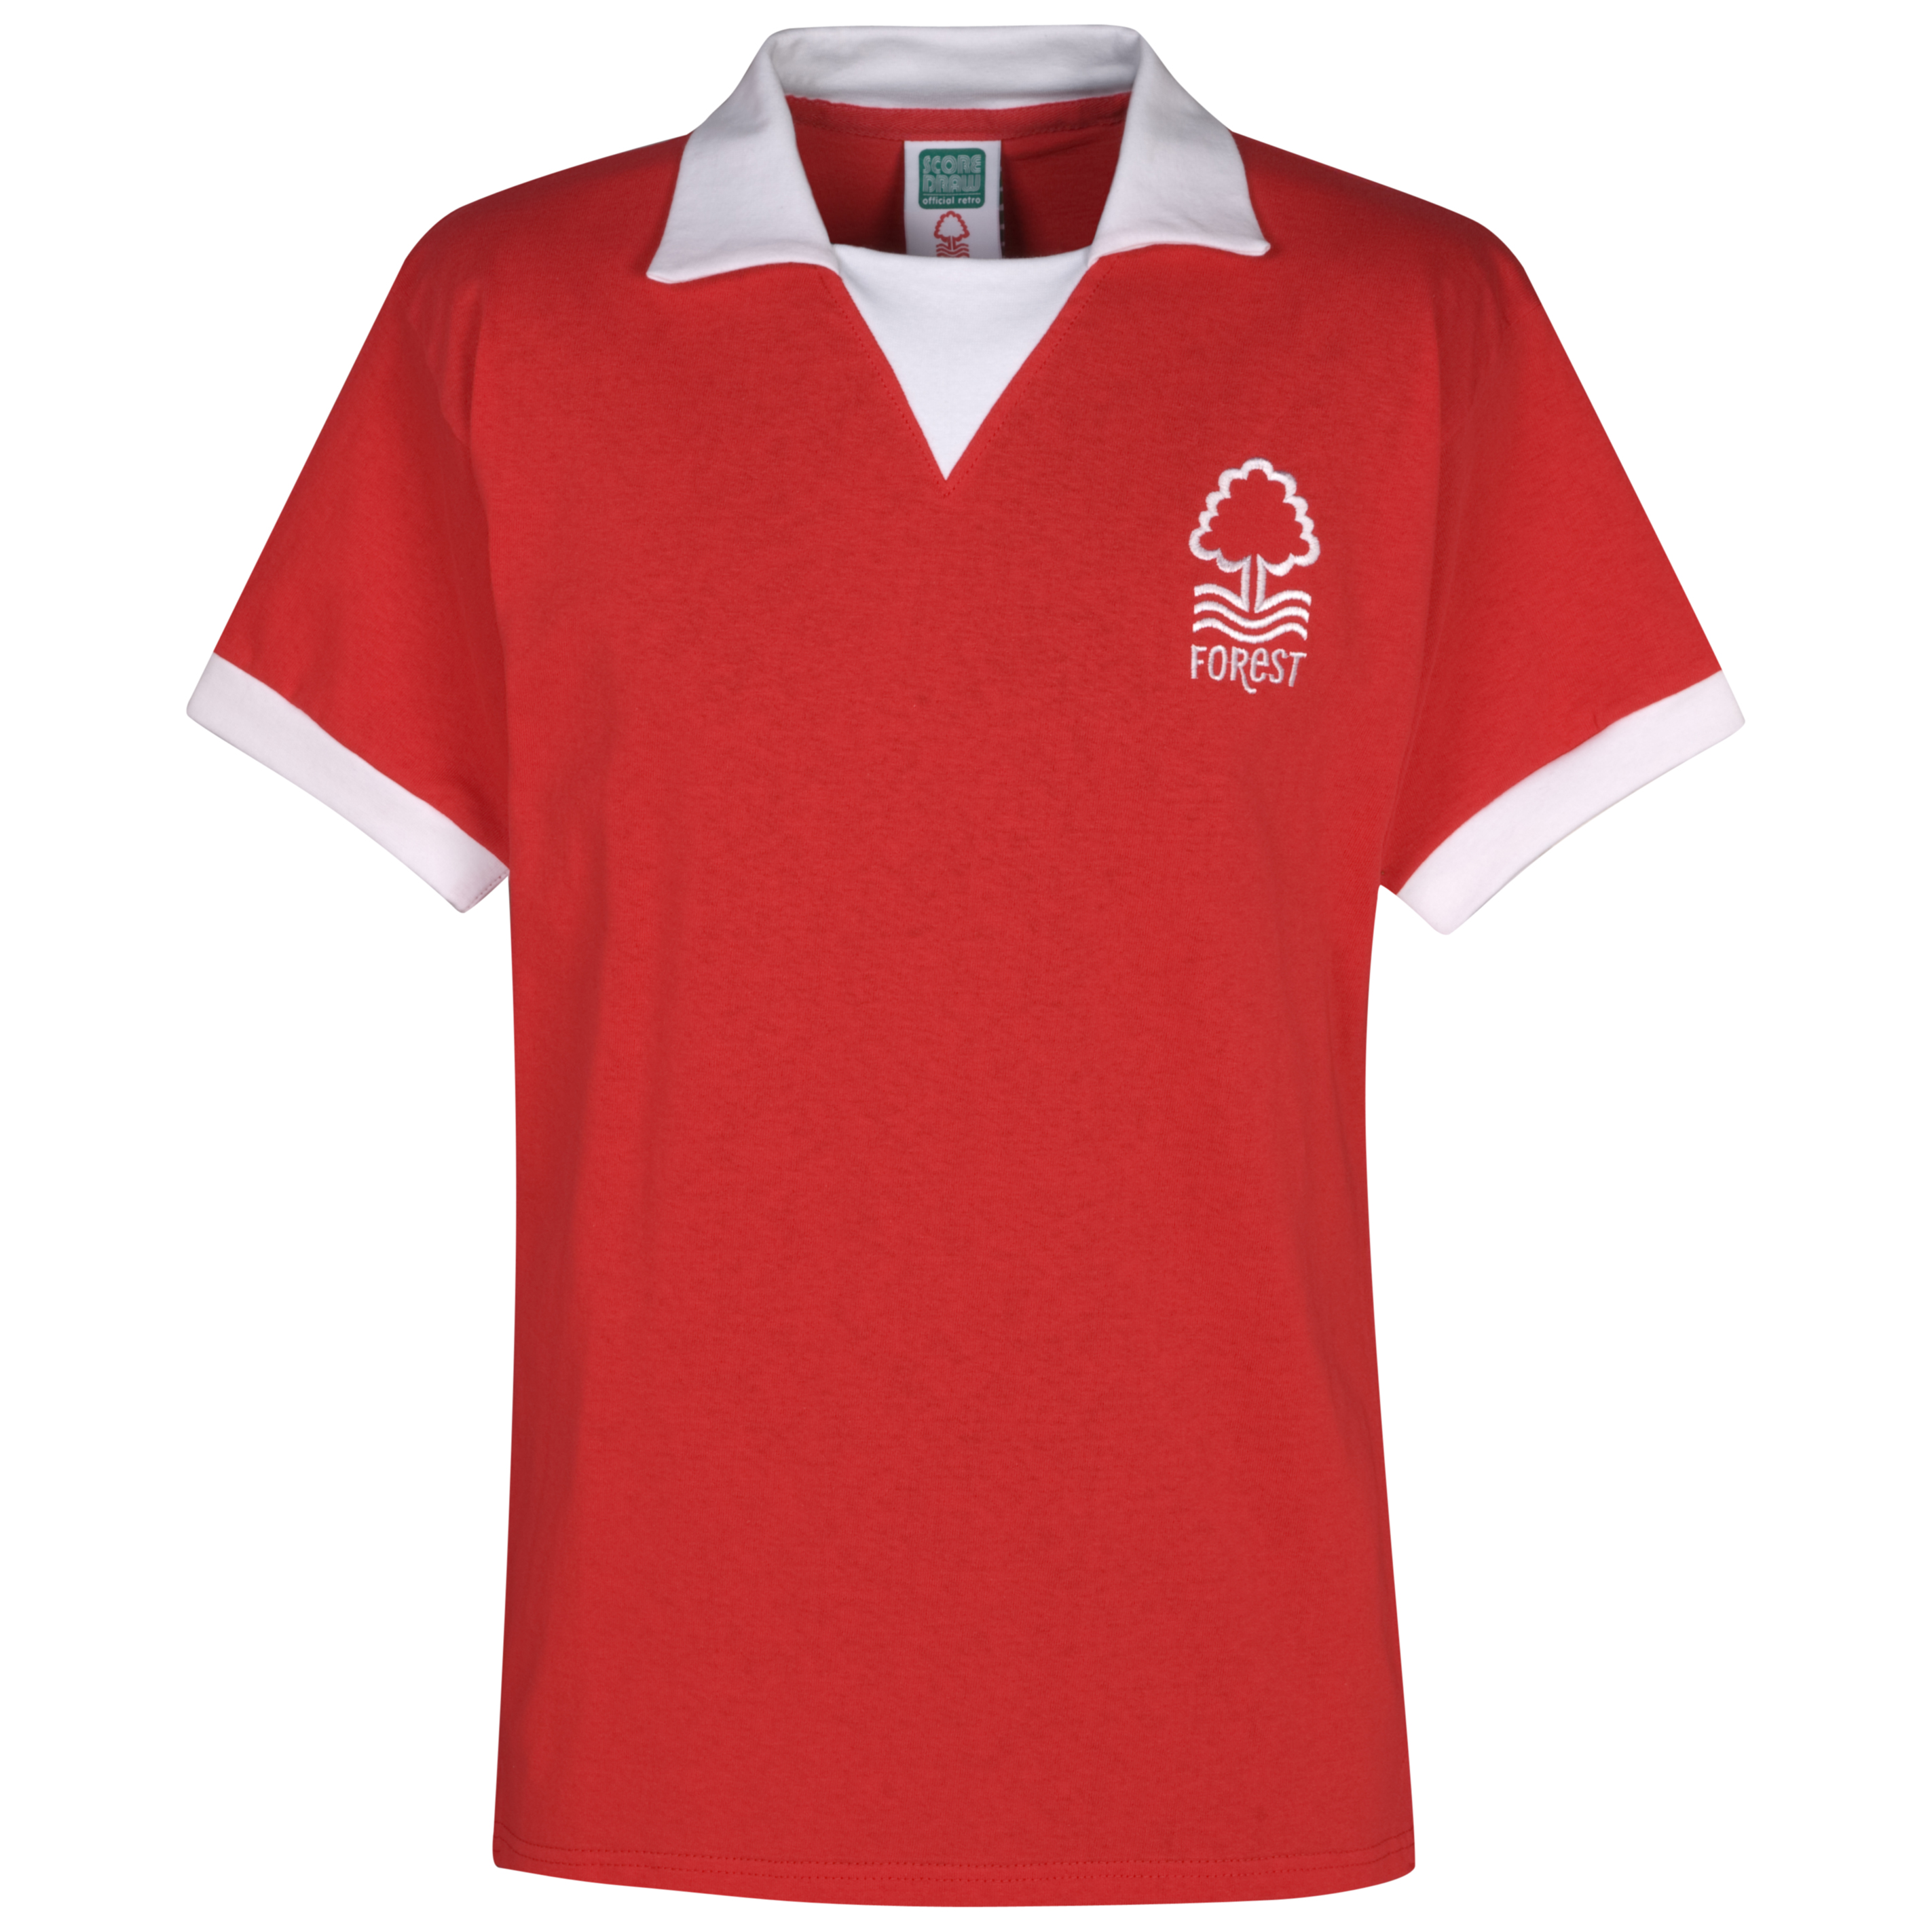 Nottingham Forest 1974 Home Shirt